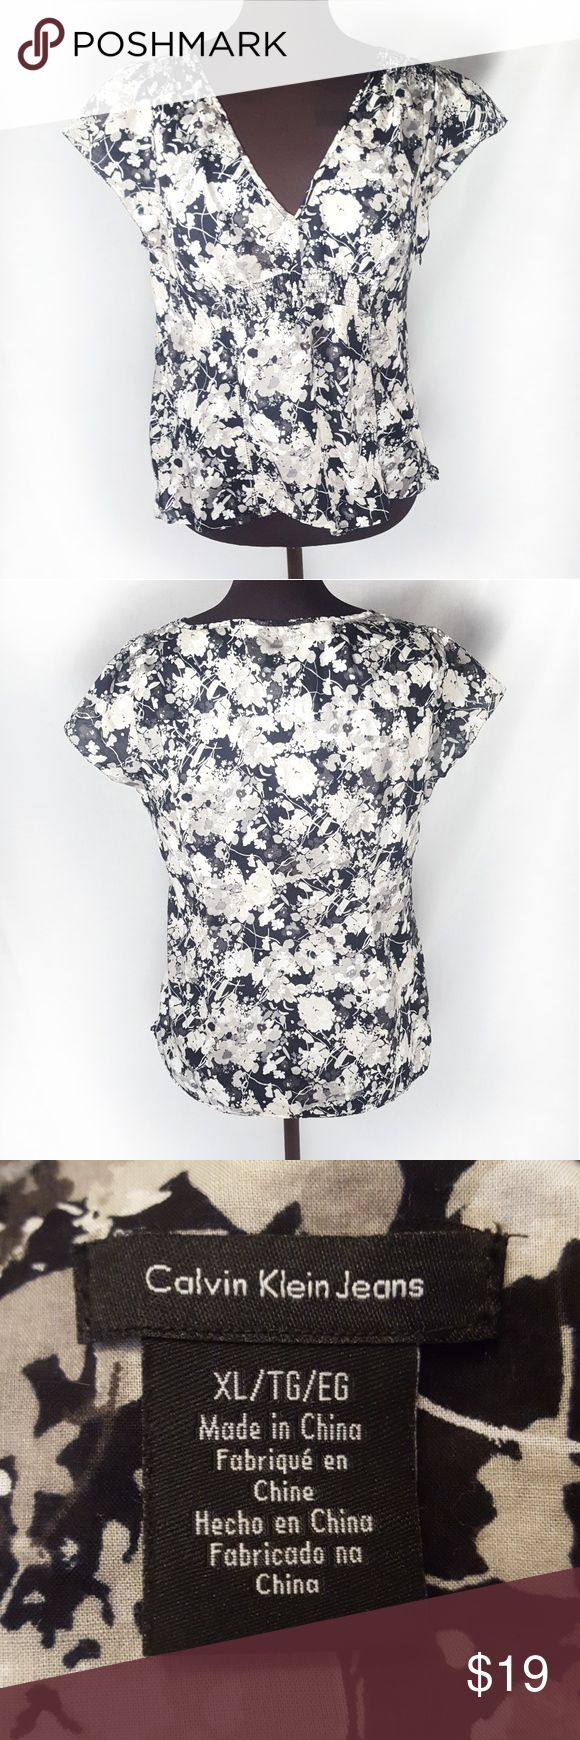 Calvin Klein Women's Blouse Top XL Cotton Floral Lovely cotton women's Top by Calvin Klein jeans. Women's size extra large. Flat underarm to underarm measurement is 20 in. There is smocking in the front for adjustability. The pattern is a floral with grey black and white. 100% cotton. There is a small mend one seam where it was coming undone at the bottom. Calvin Klein Jeans Tops Blouses